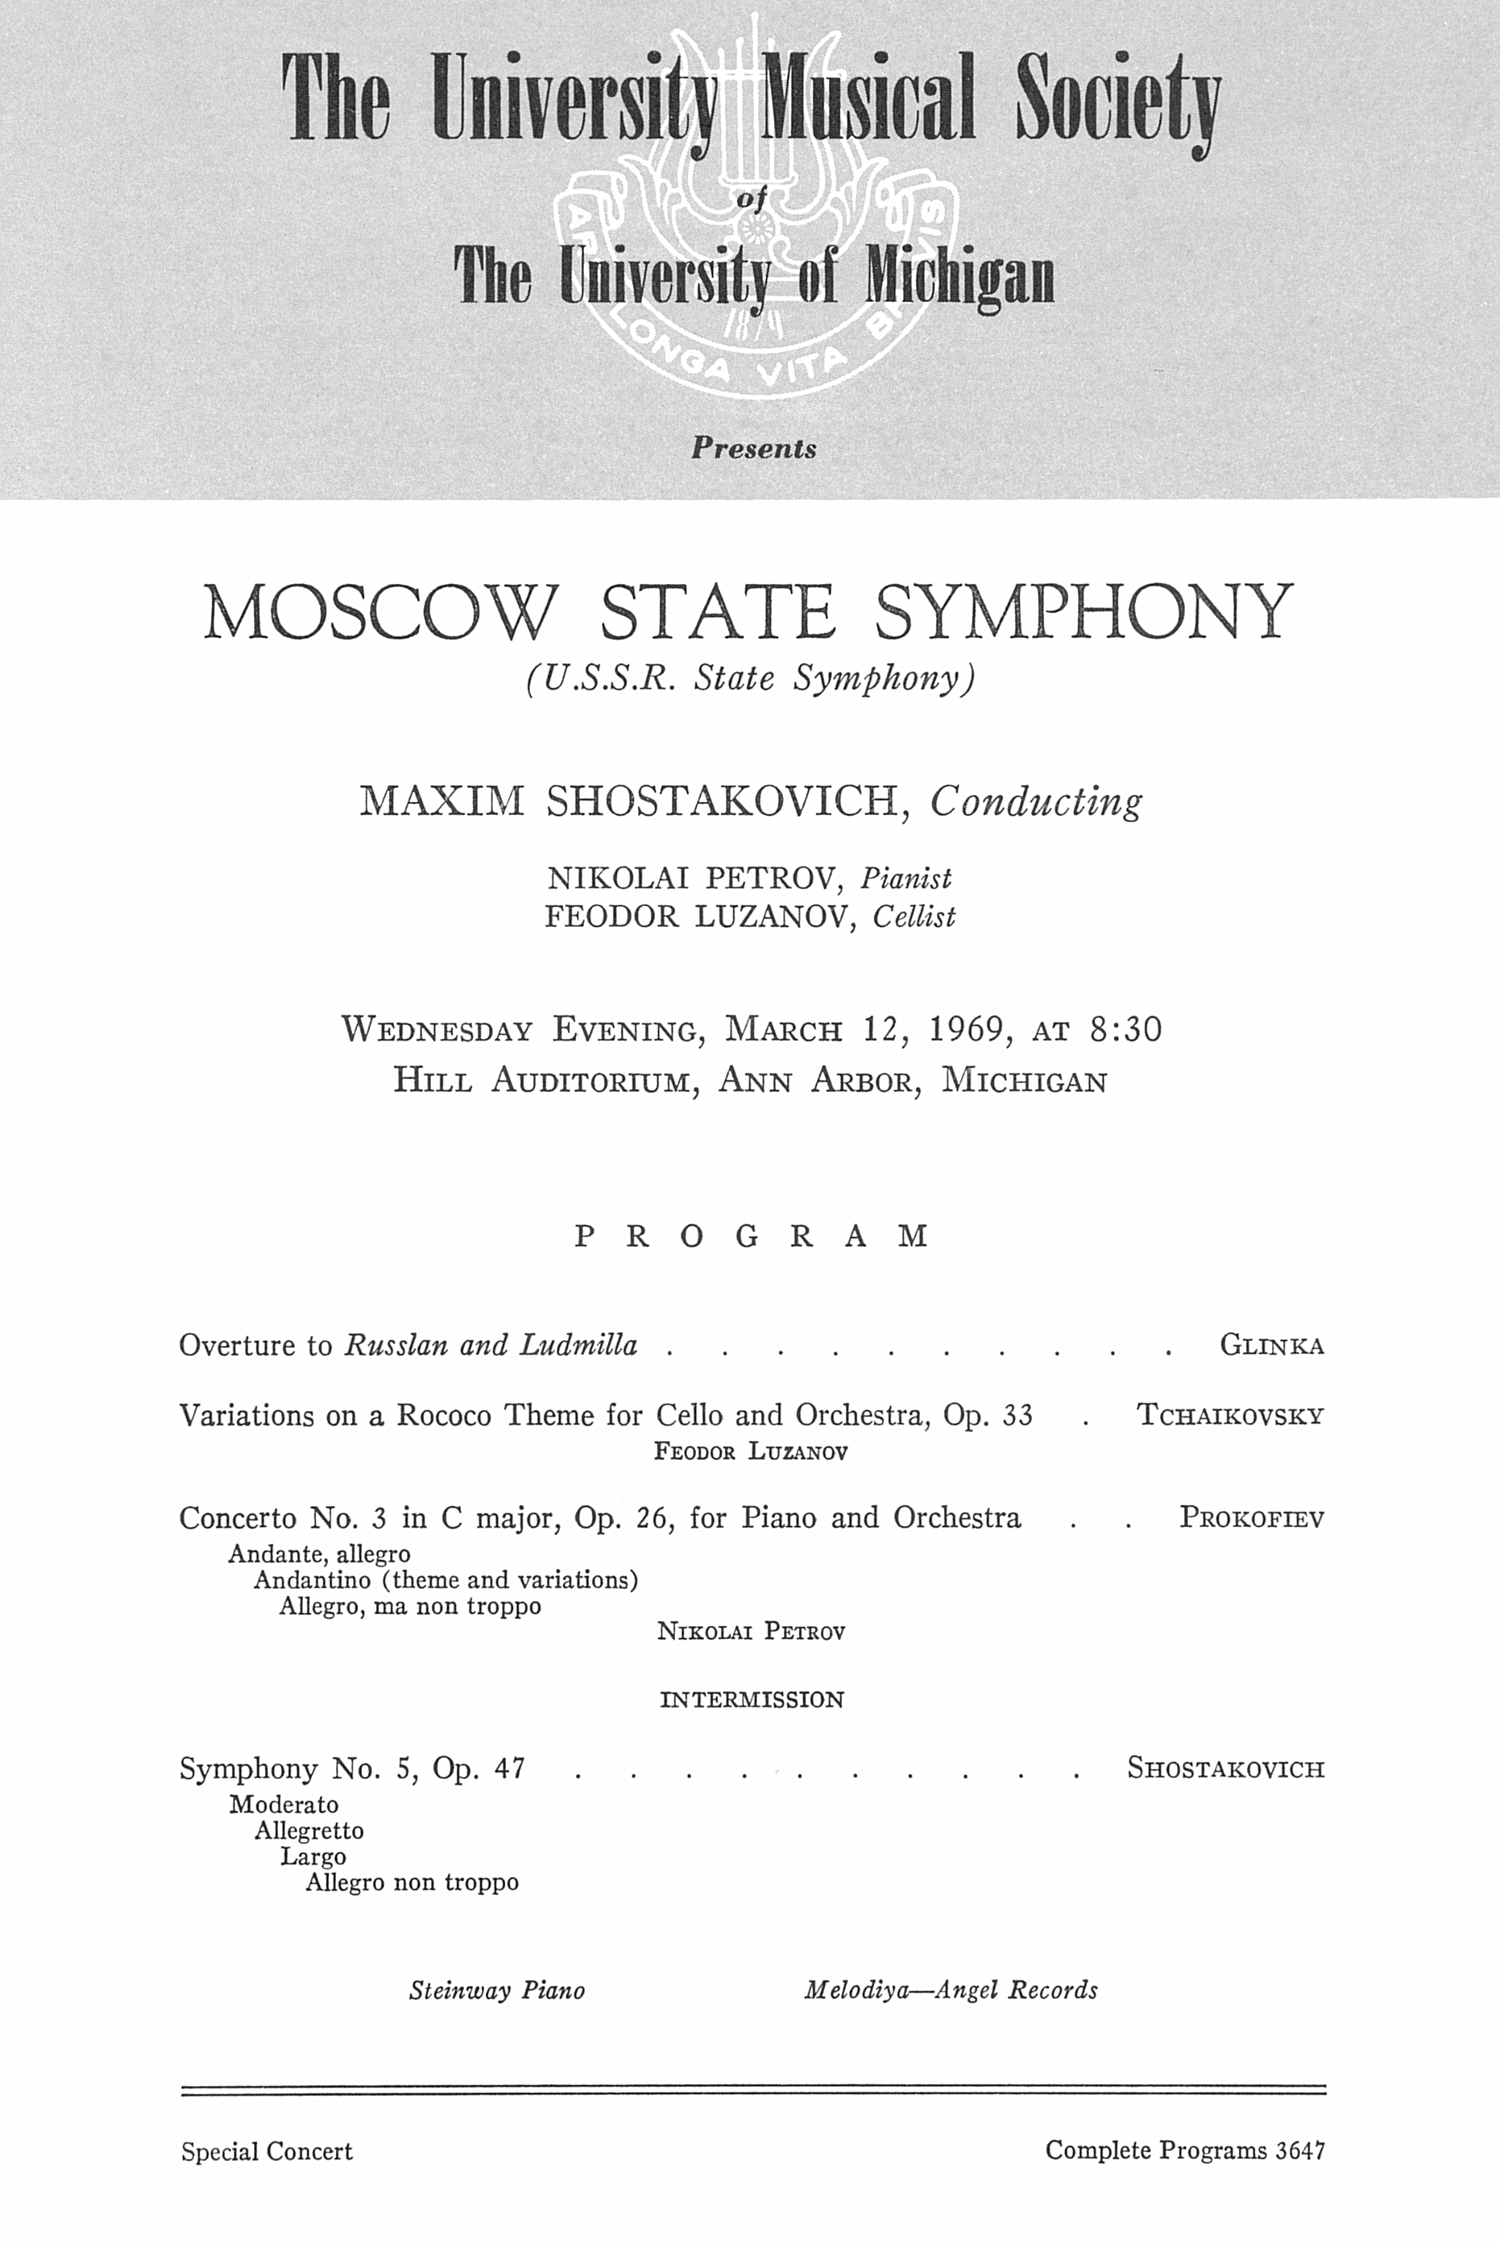 UMS Concert Program, March 12, 1969: Moscow State Symphony --  image